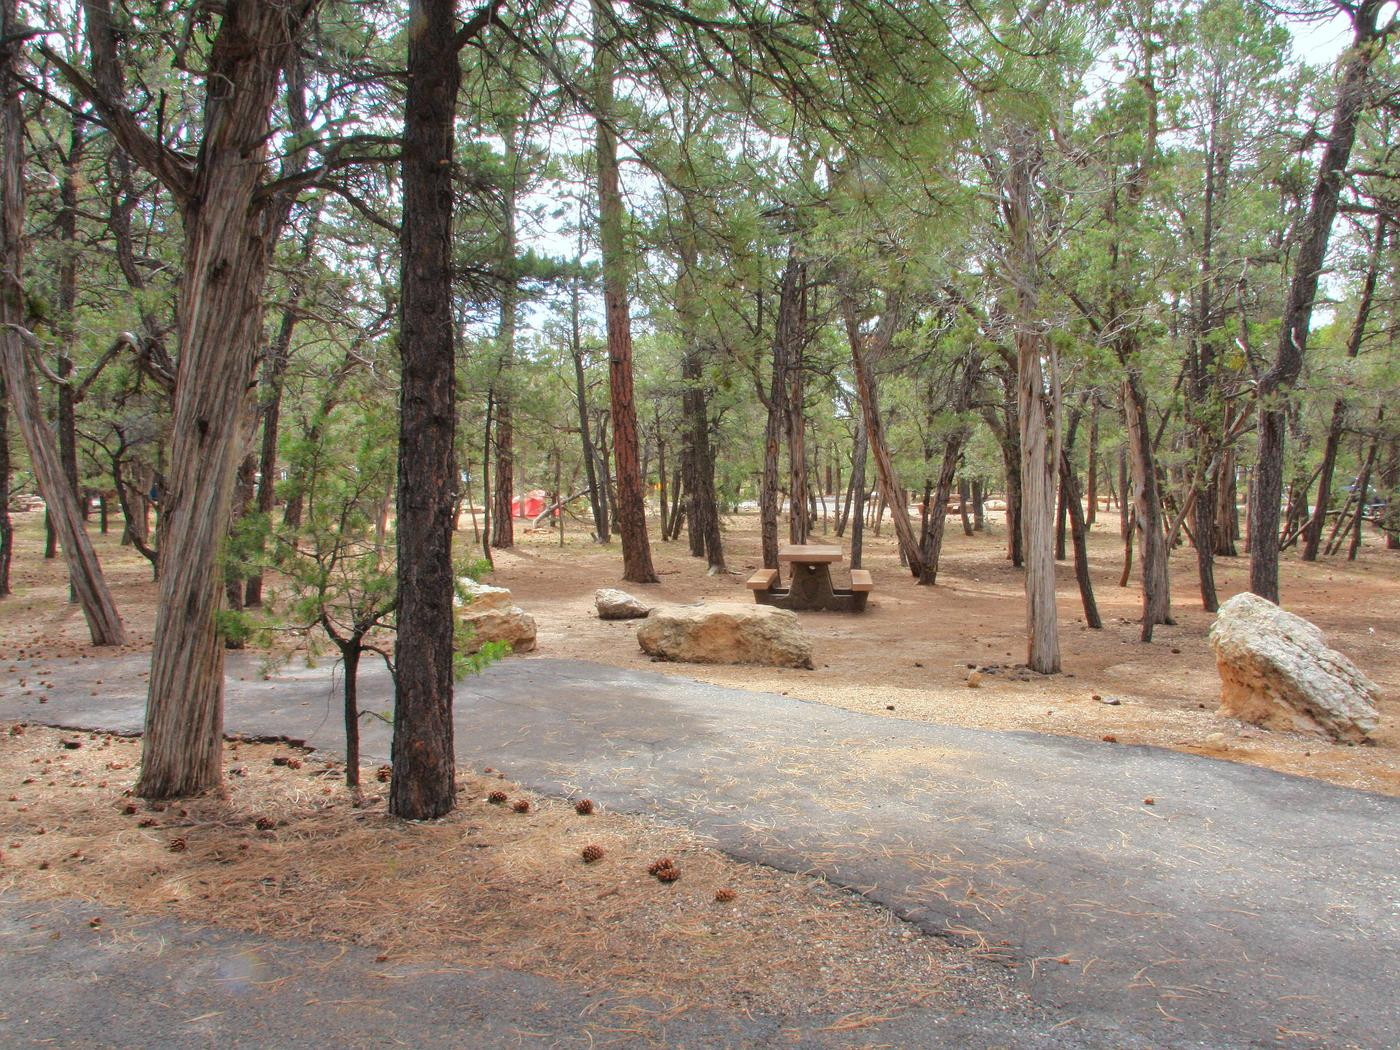 Picnic table, fire pit and parking spot, Mather Campground